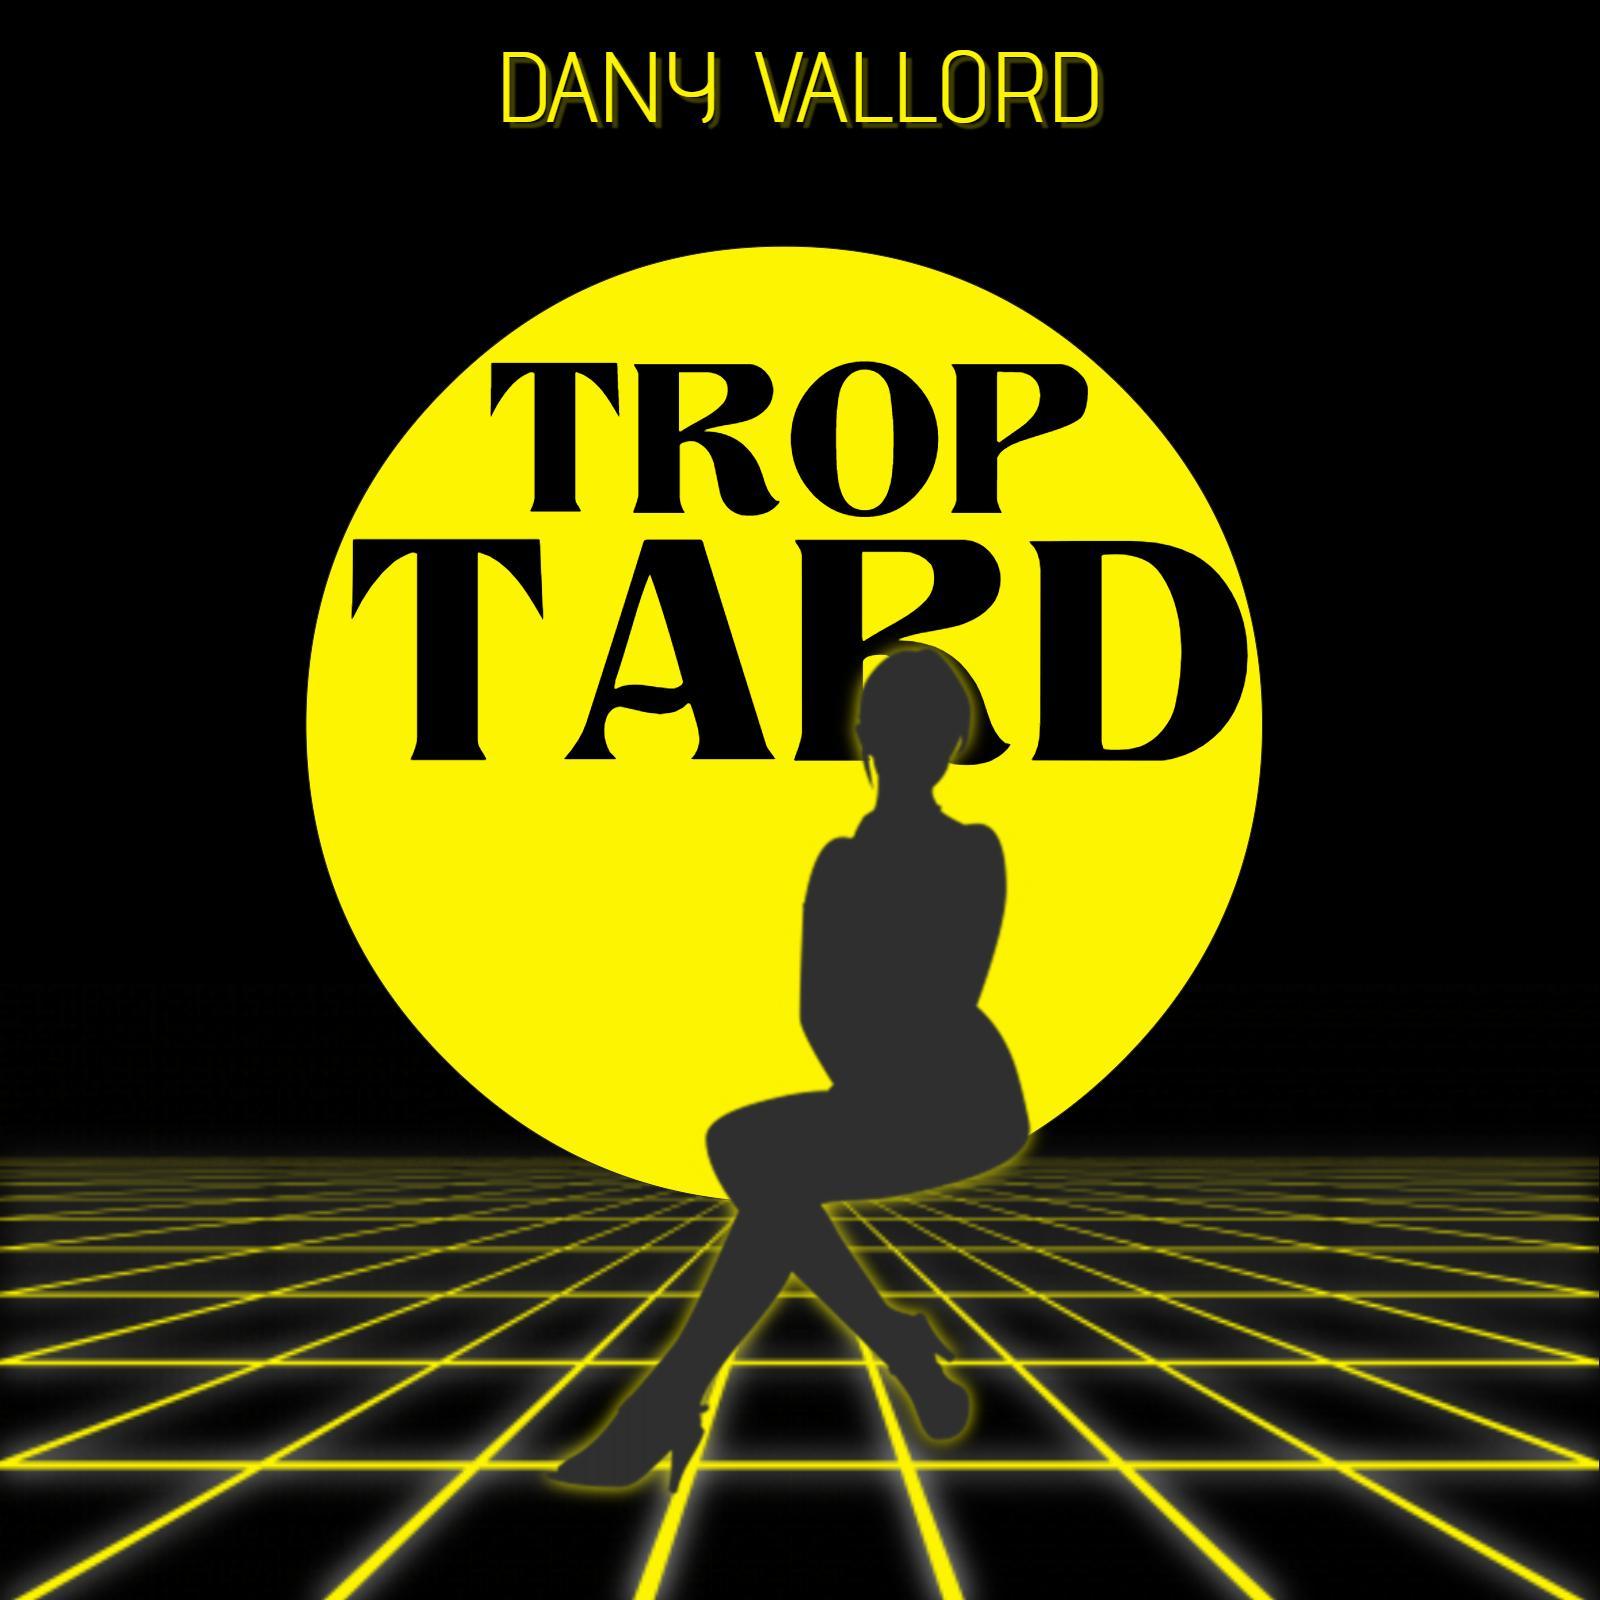 Dany Vallord - Trop tard